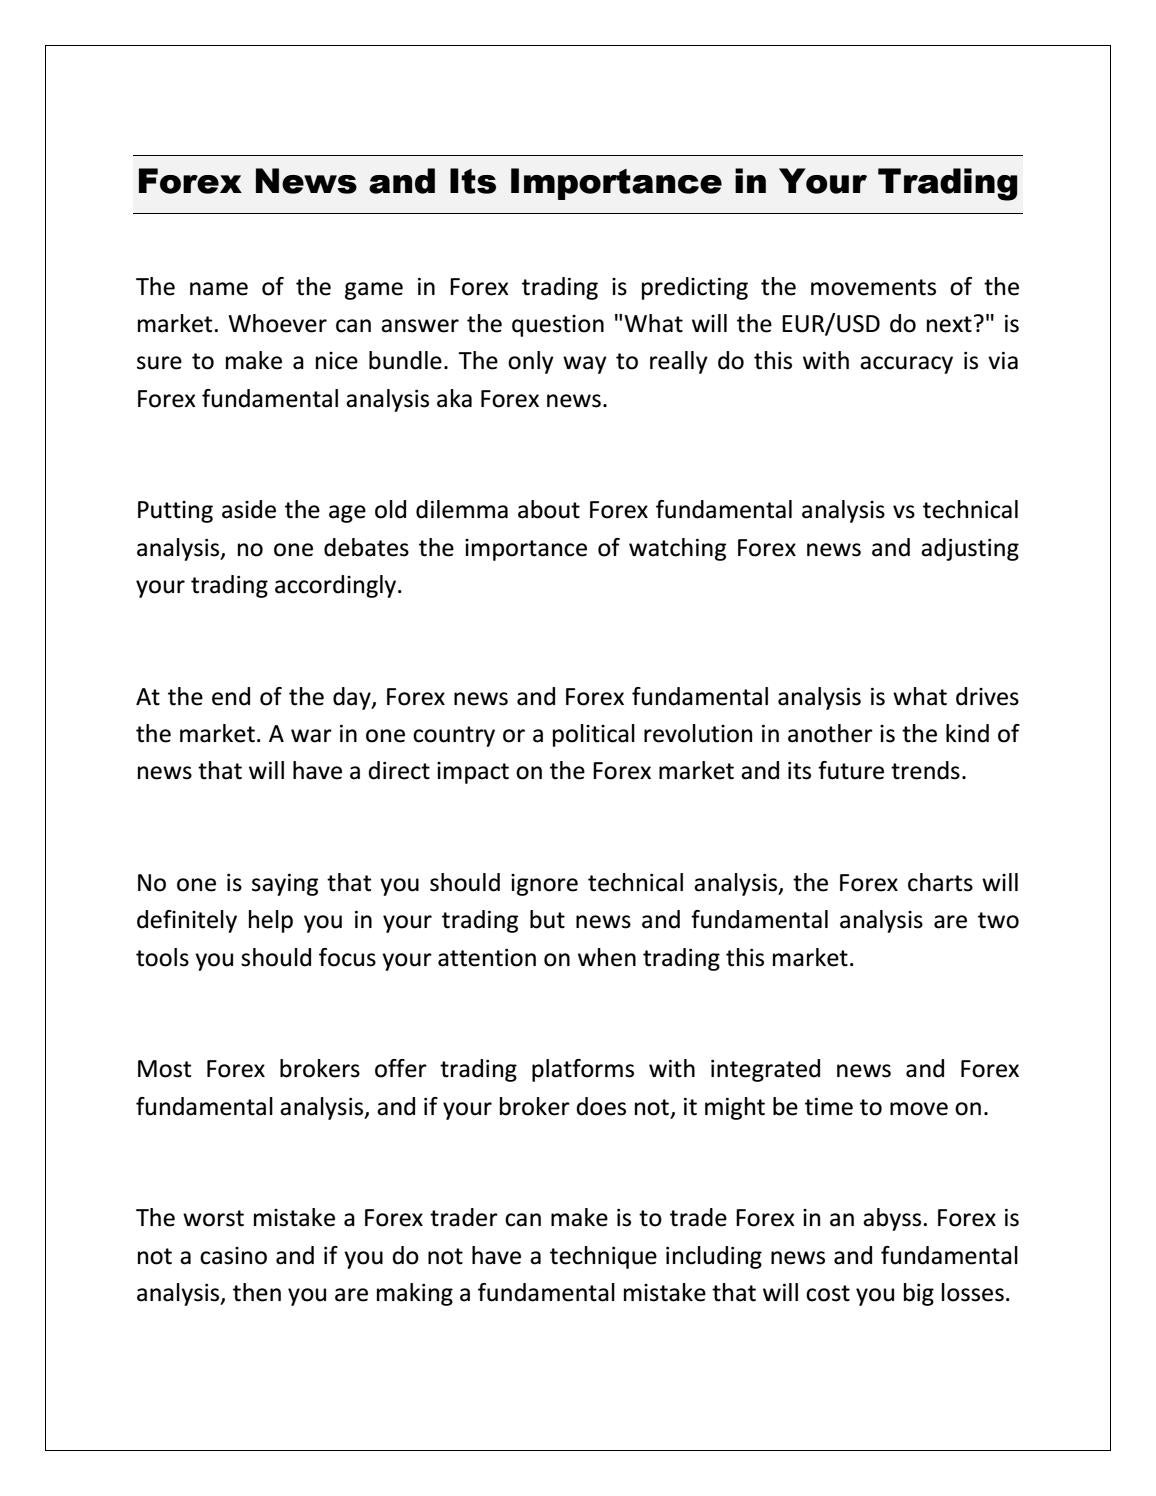 Forex News and Its Importance in Your Trading by Yee Kok